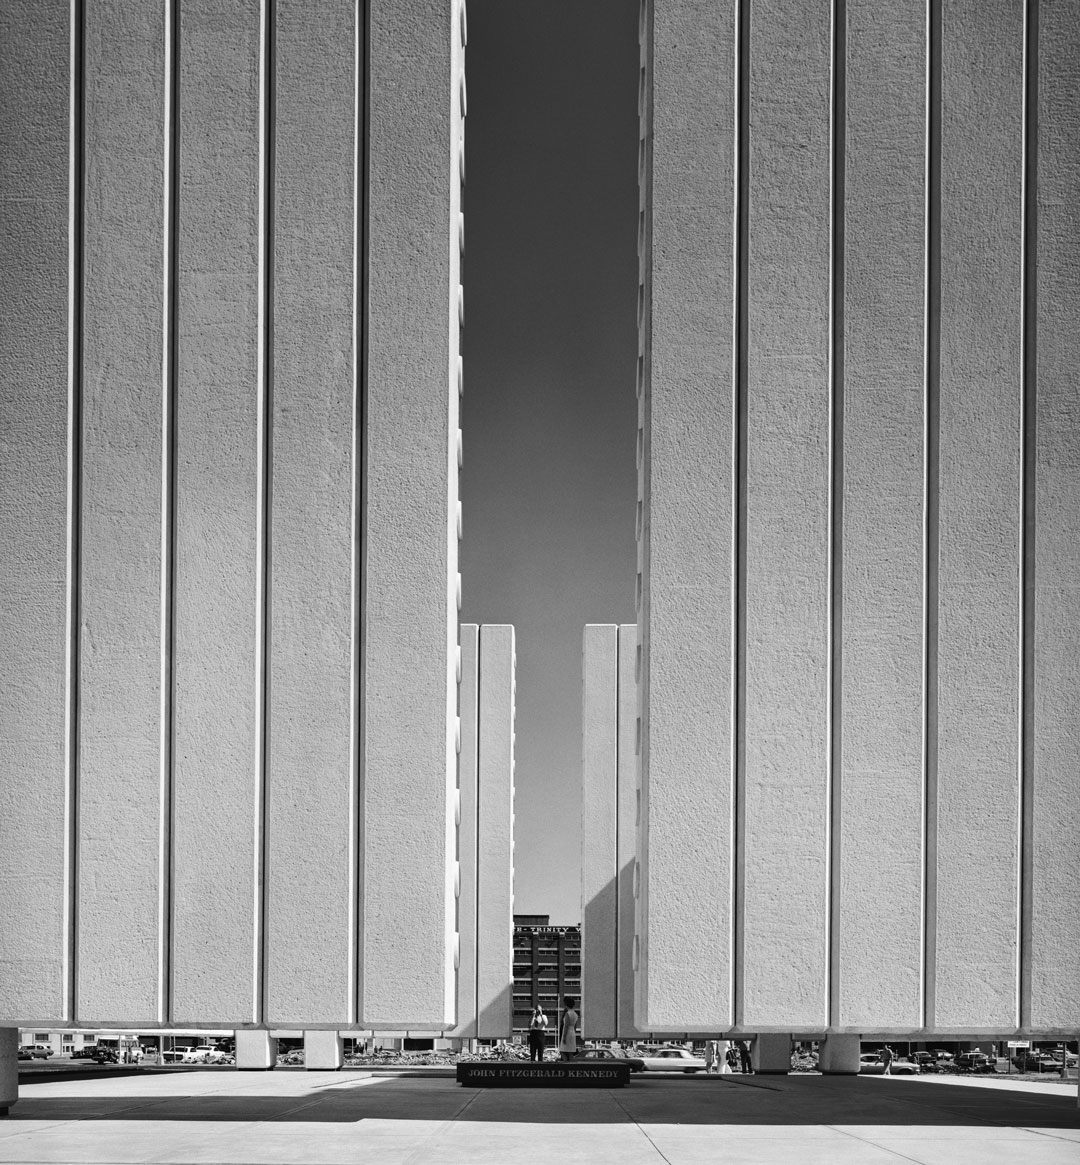 Ezra Stoller: Philip Johnson, John F. Kennedy Memorial Plaza (1970), Dallas, TX, 1970